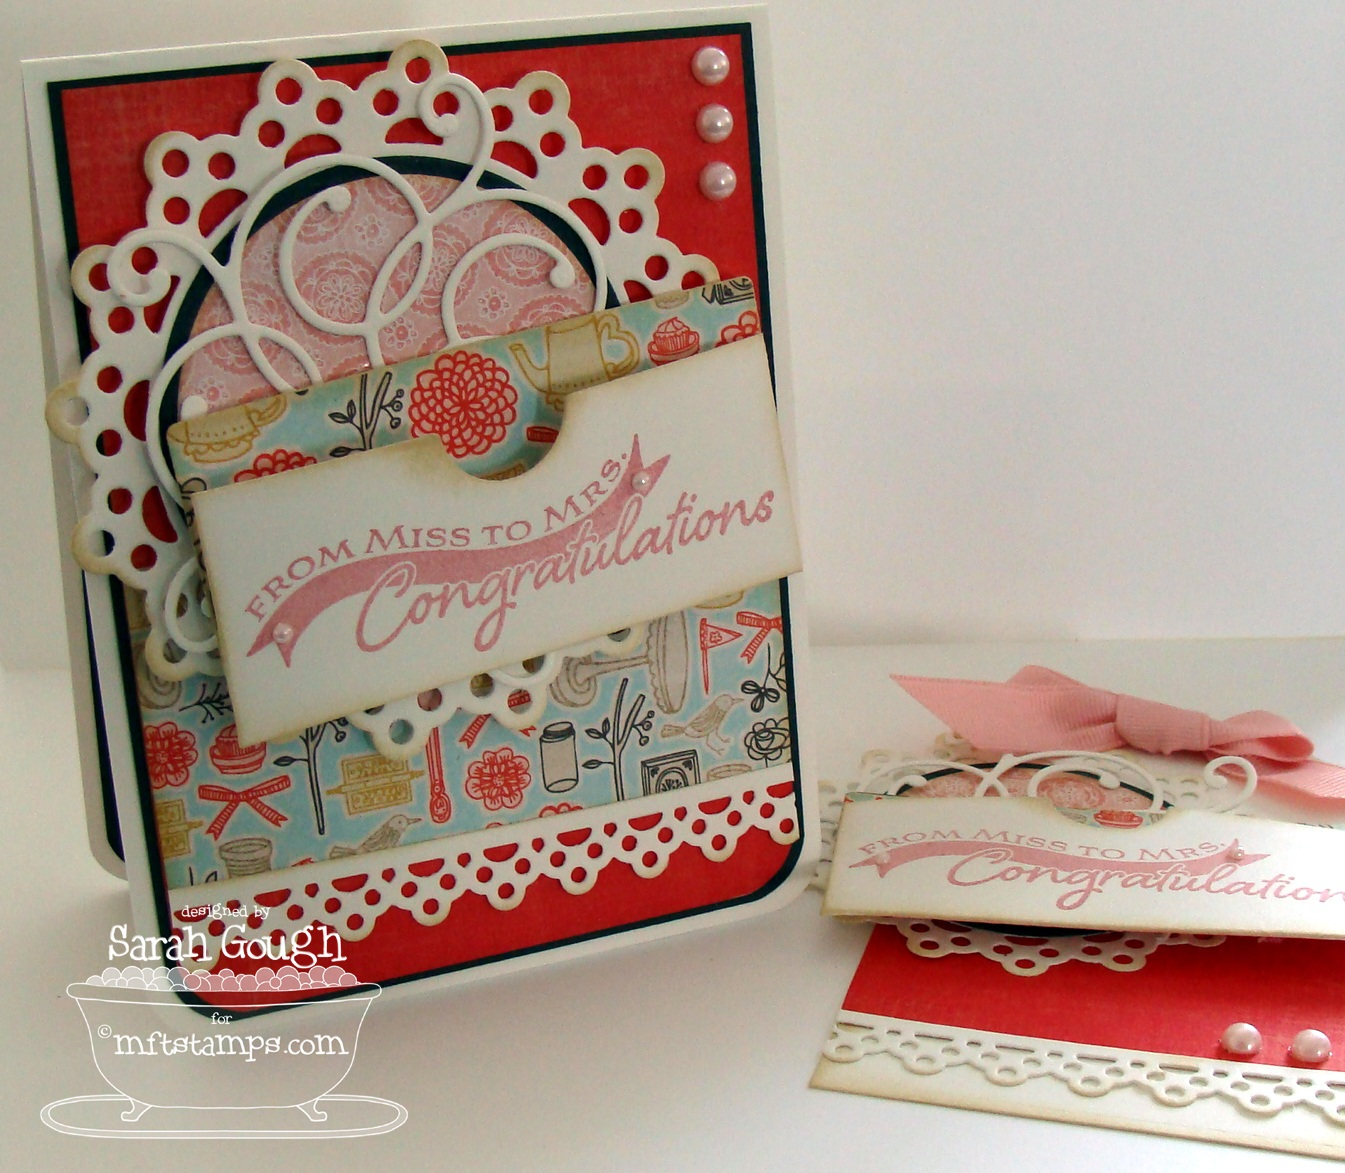 Thinking stamps gift card greetings ii my first card and tag are lovely and girly perfect for a bride to be m4hsunfo